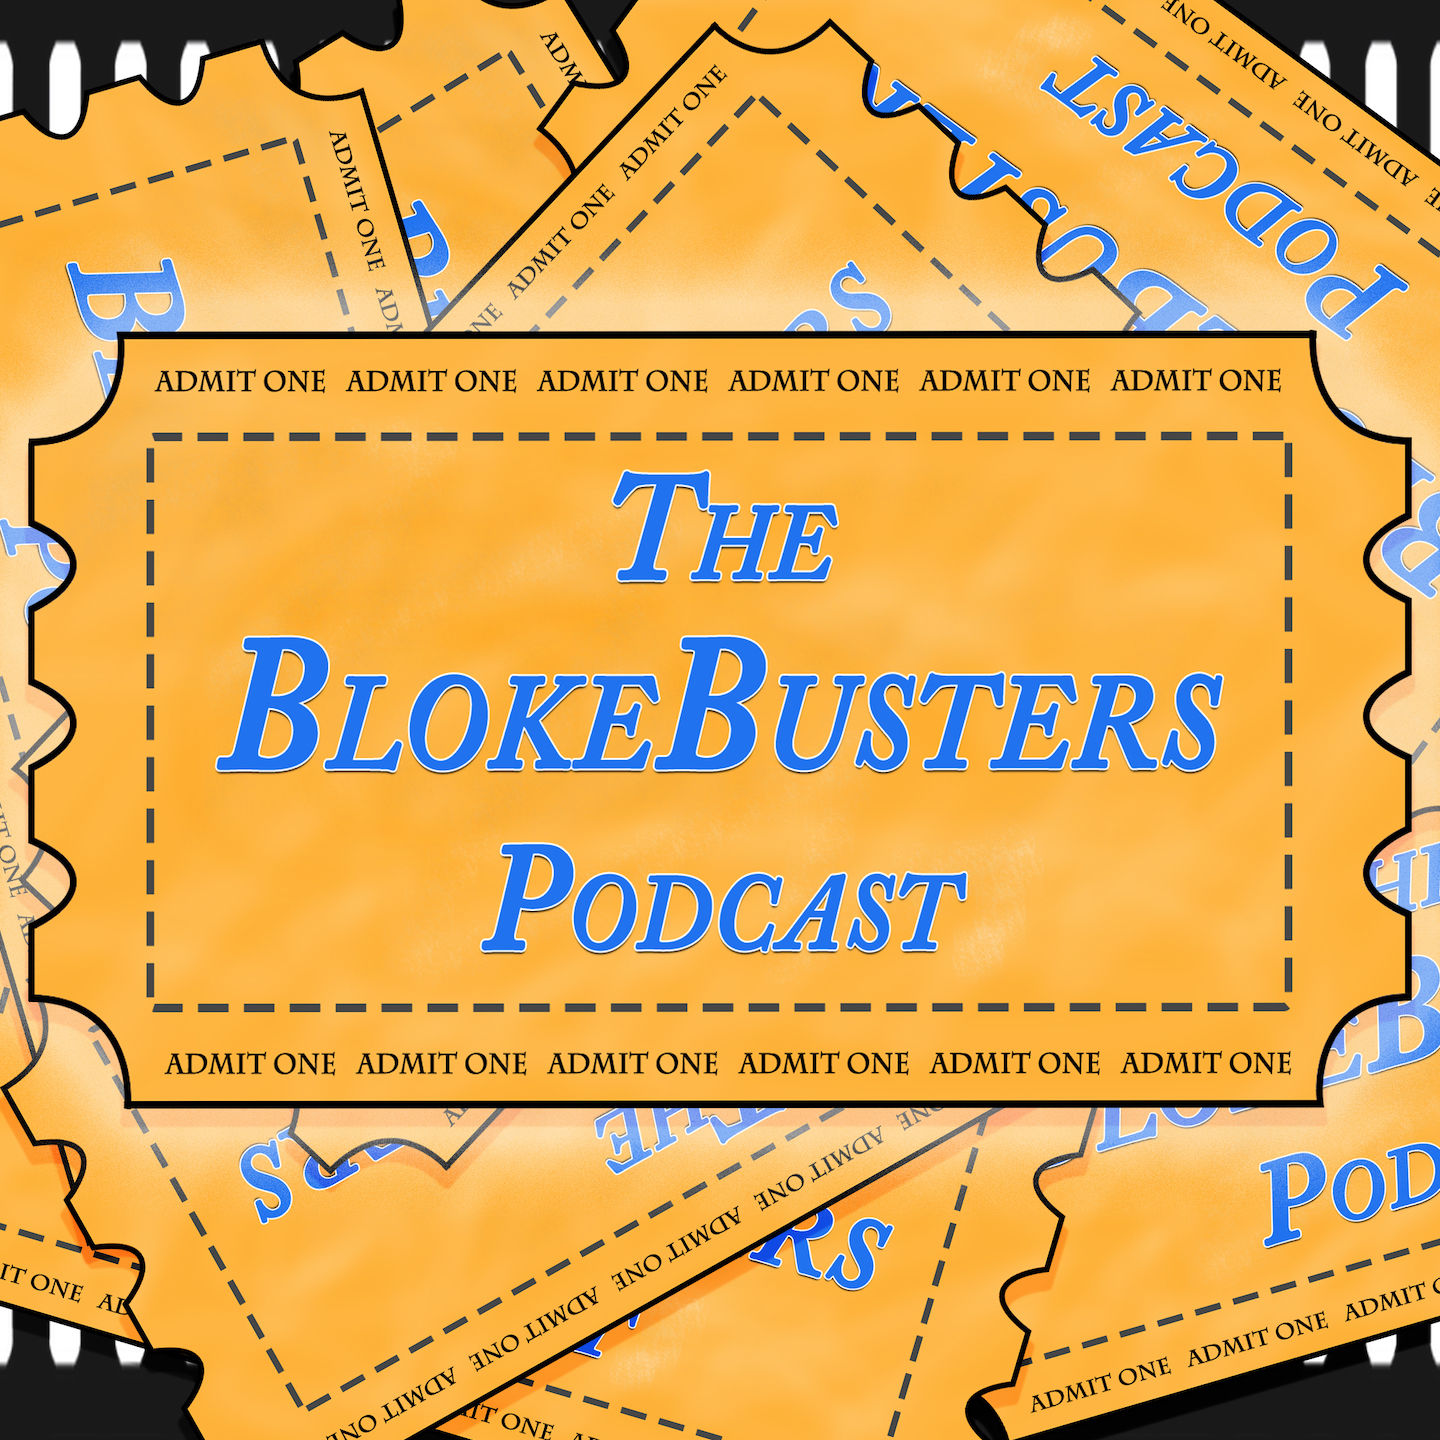 The BlokeBusters Podcast